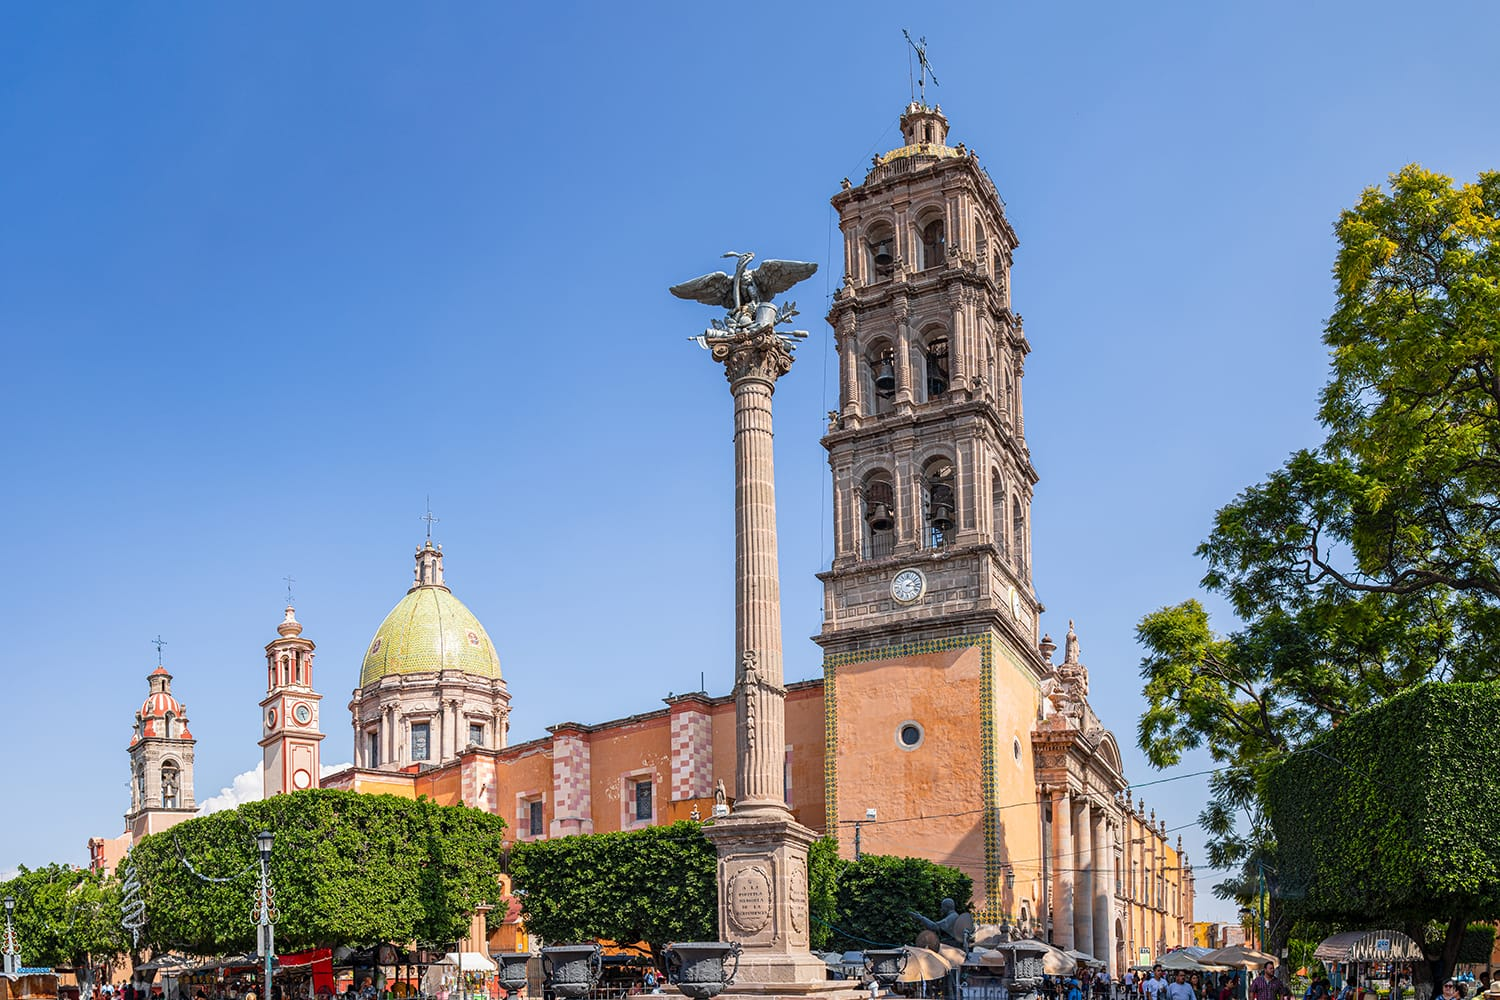 Tourists and locals around the Immaculate Conception Cathedral, with the Independence column at the front in Celaya, Guanajuato, Mexico